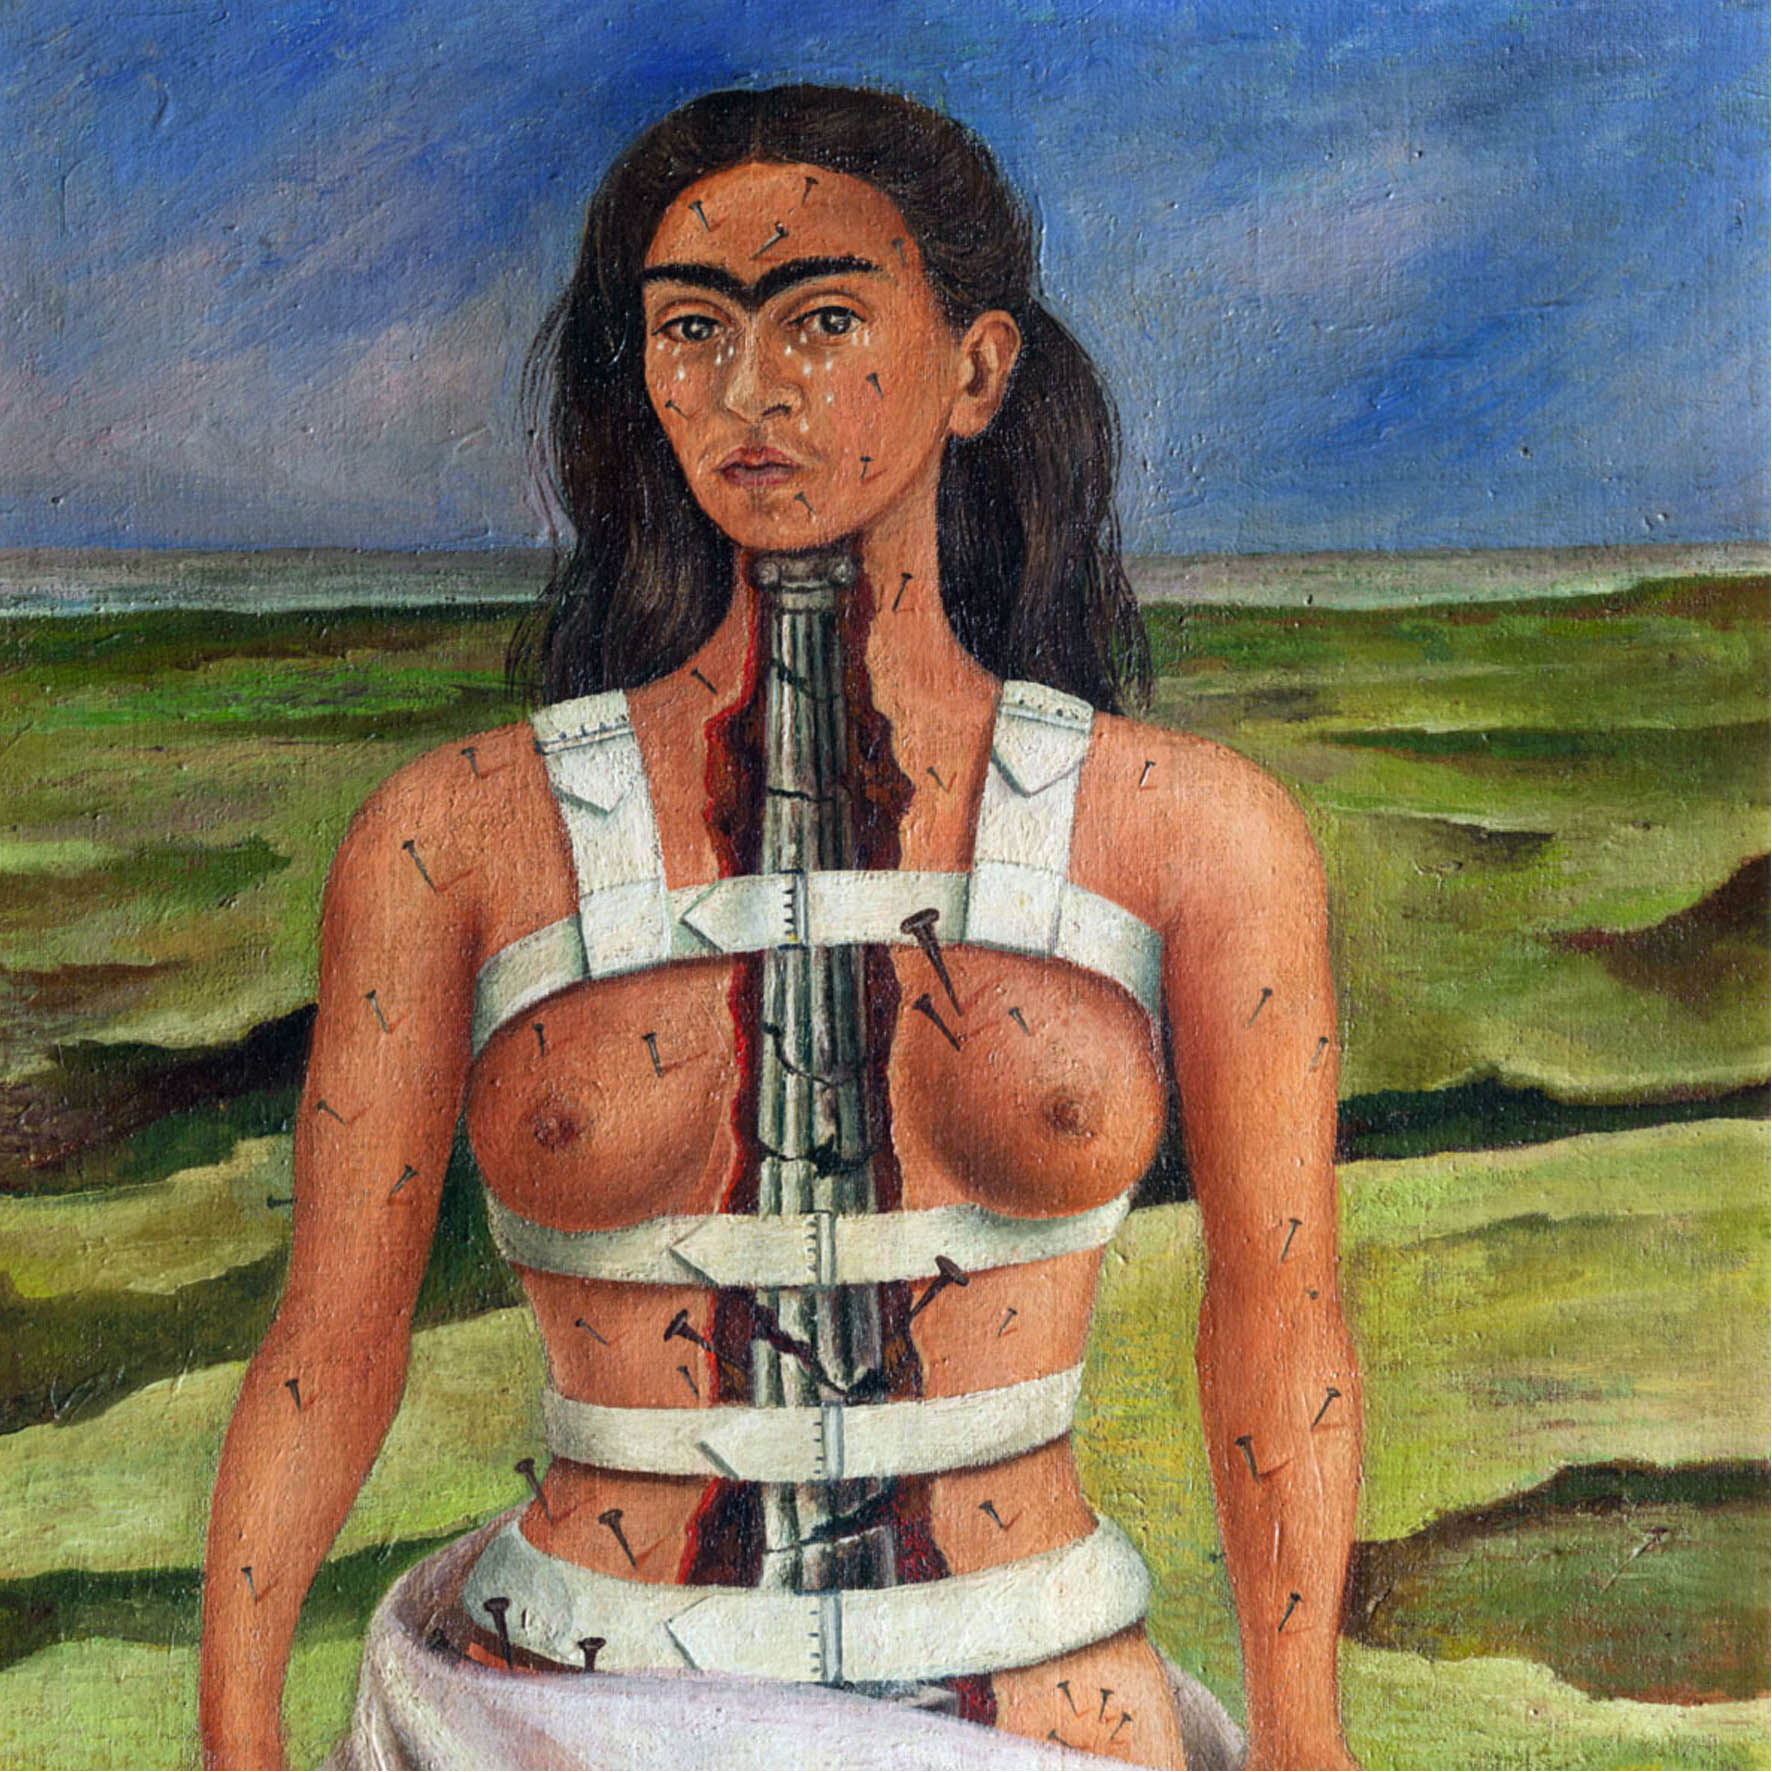 FRIDA KAHLO PAINTINGS AND DRAWINGS FROM MEXICO'S COLLECTIONS